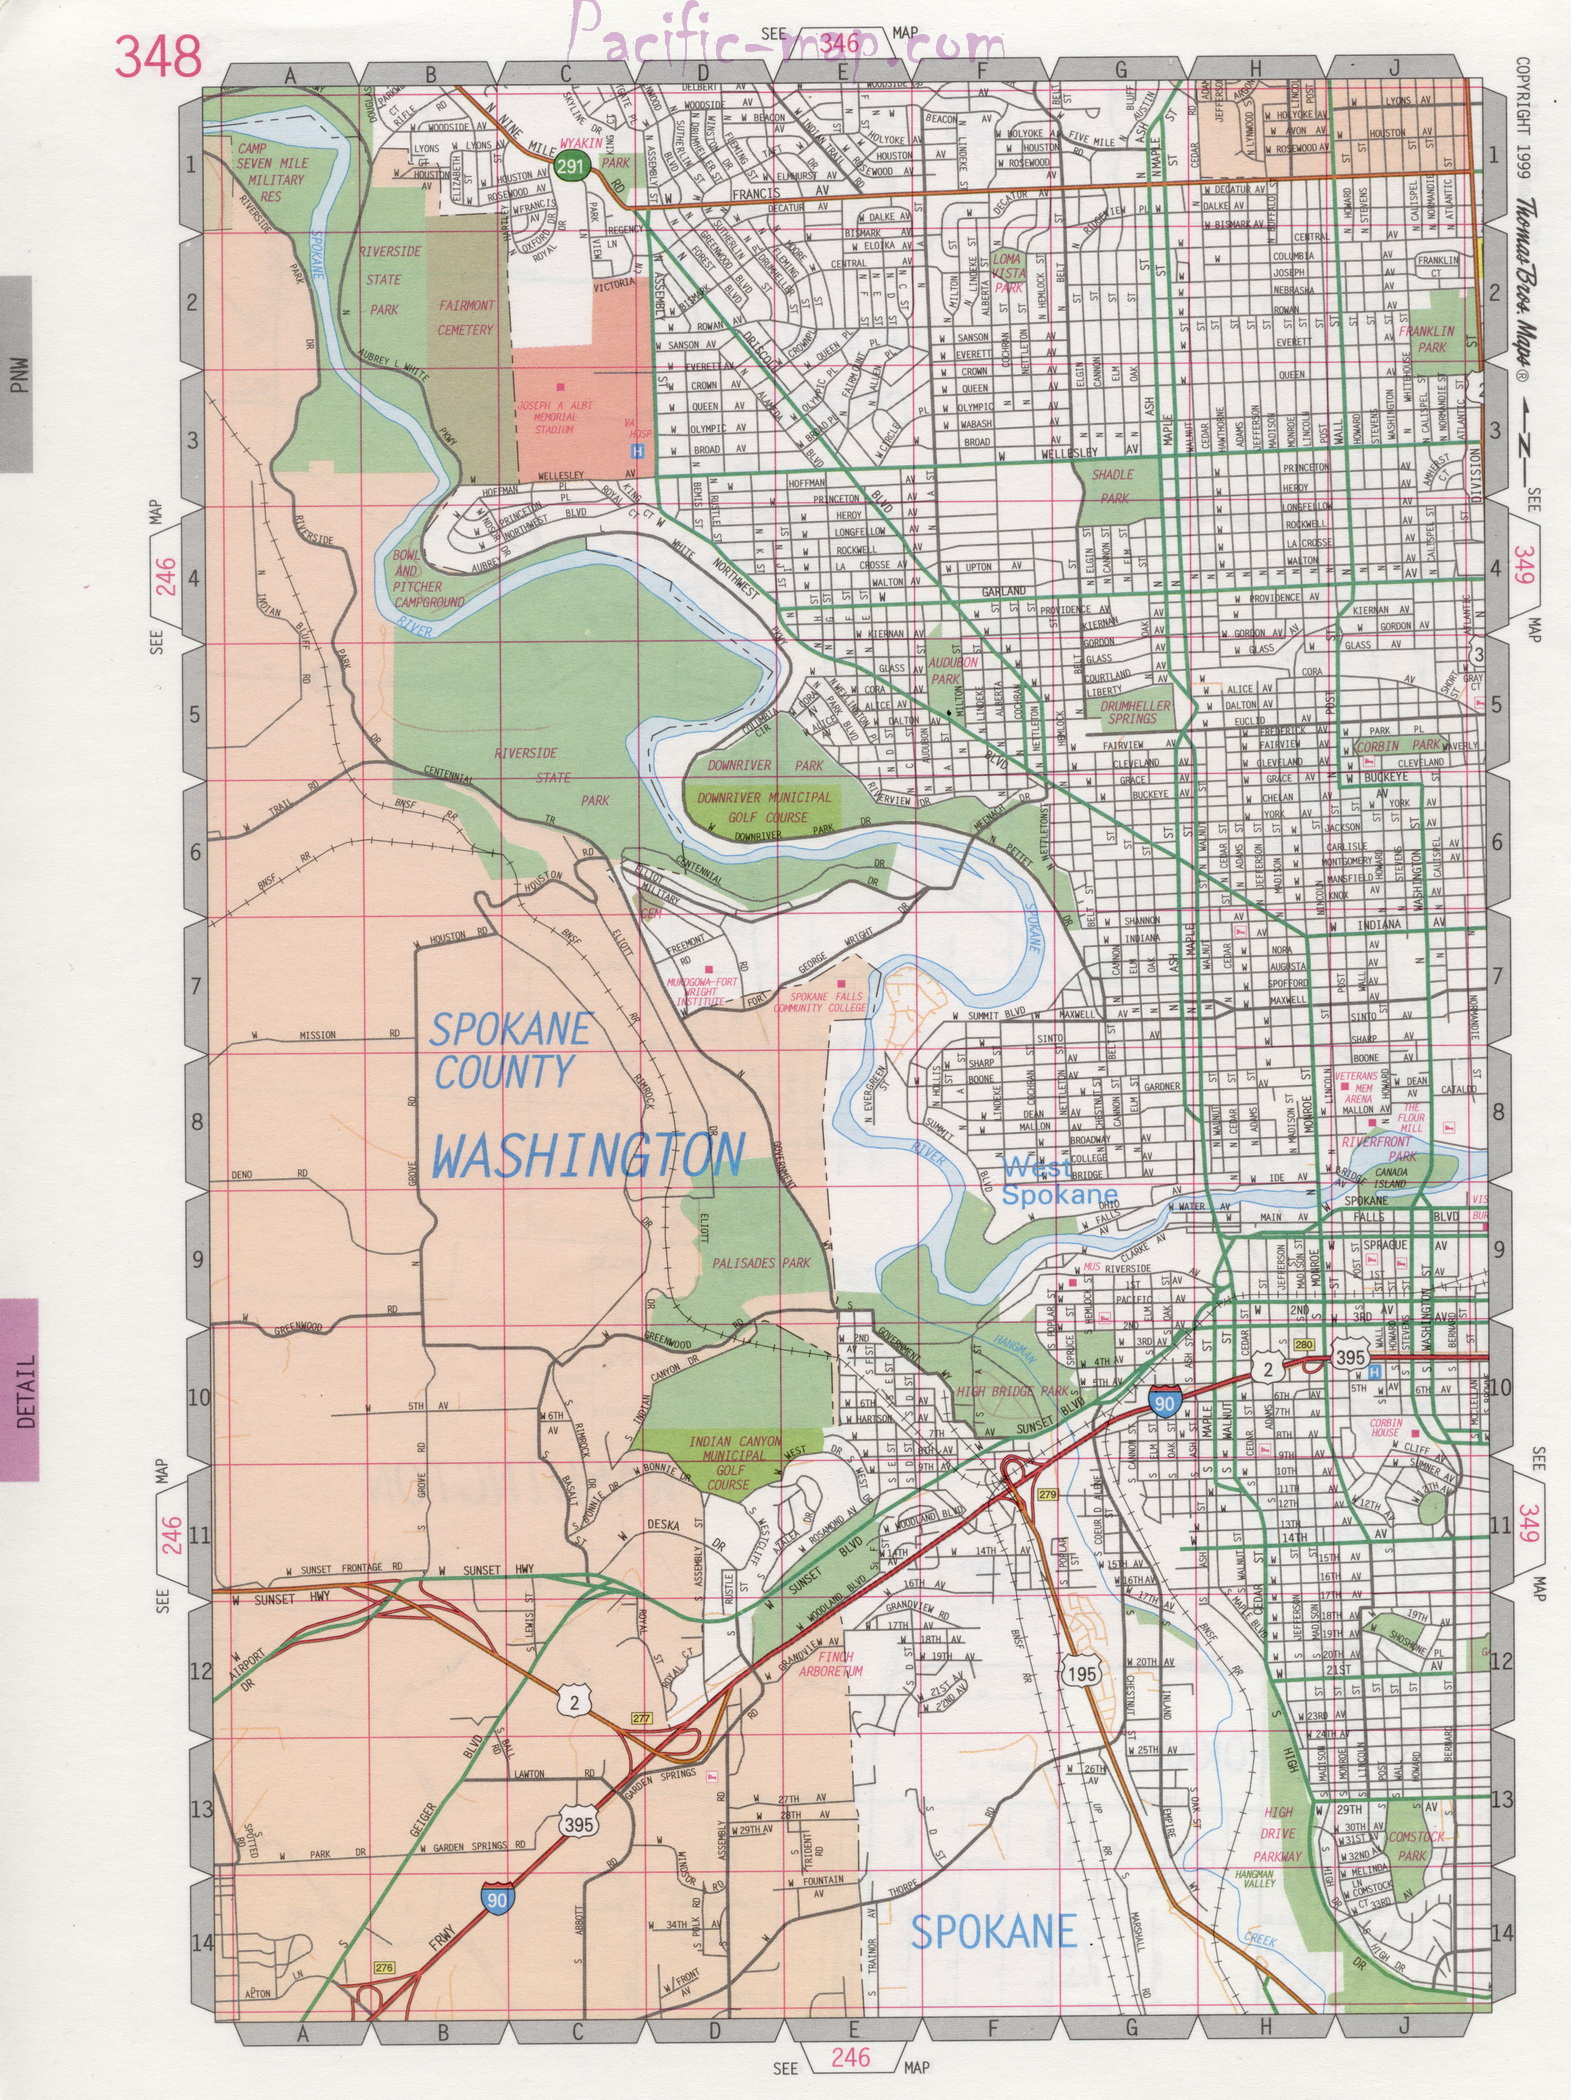 Spokane map